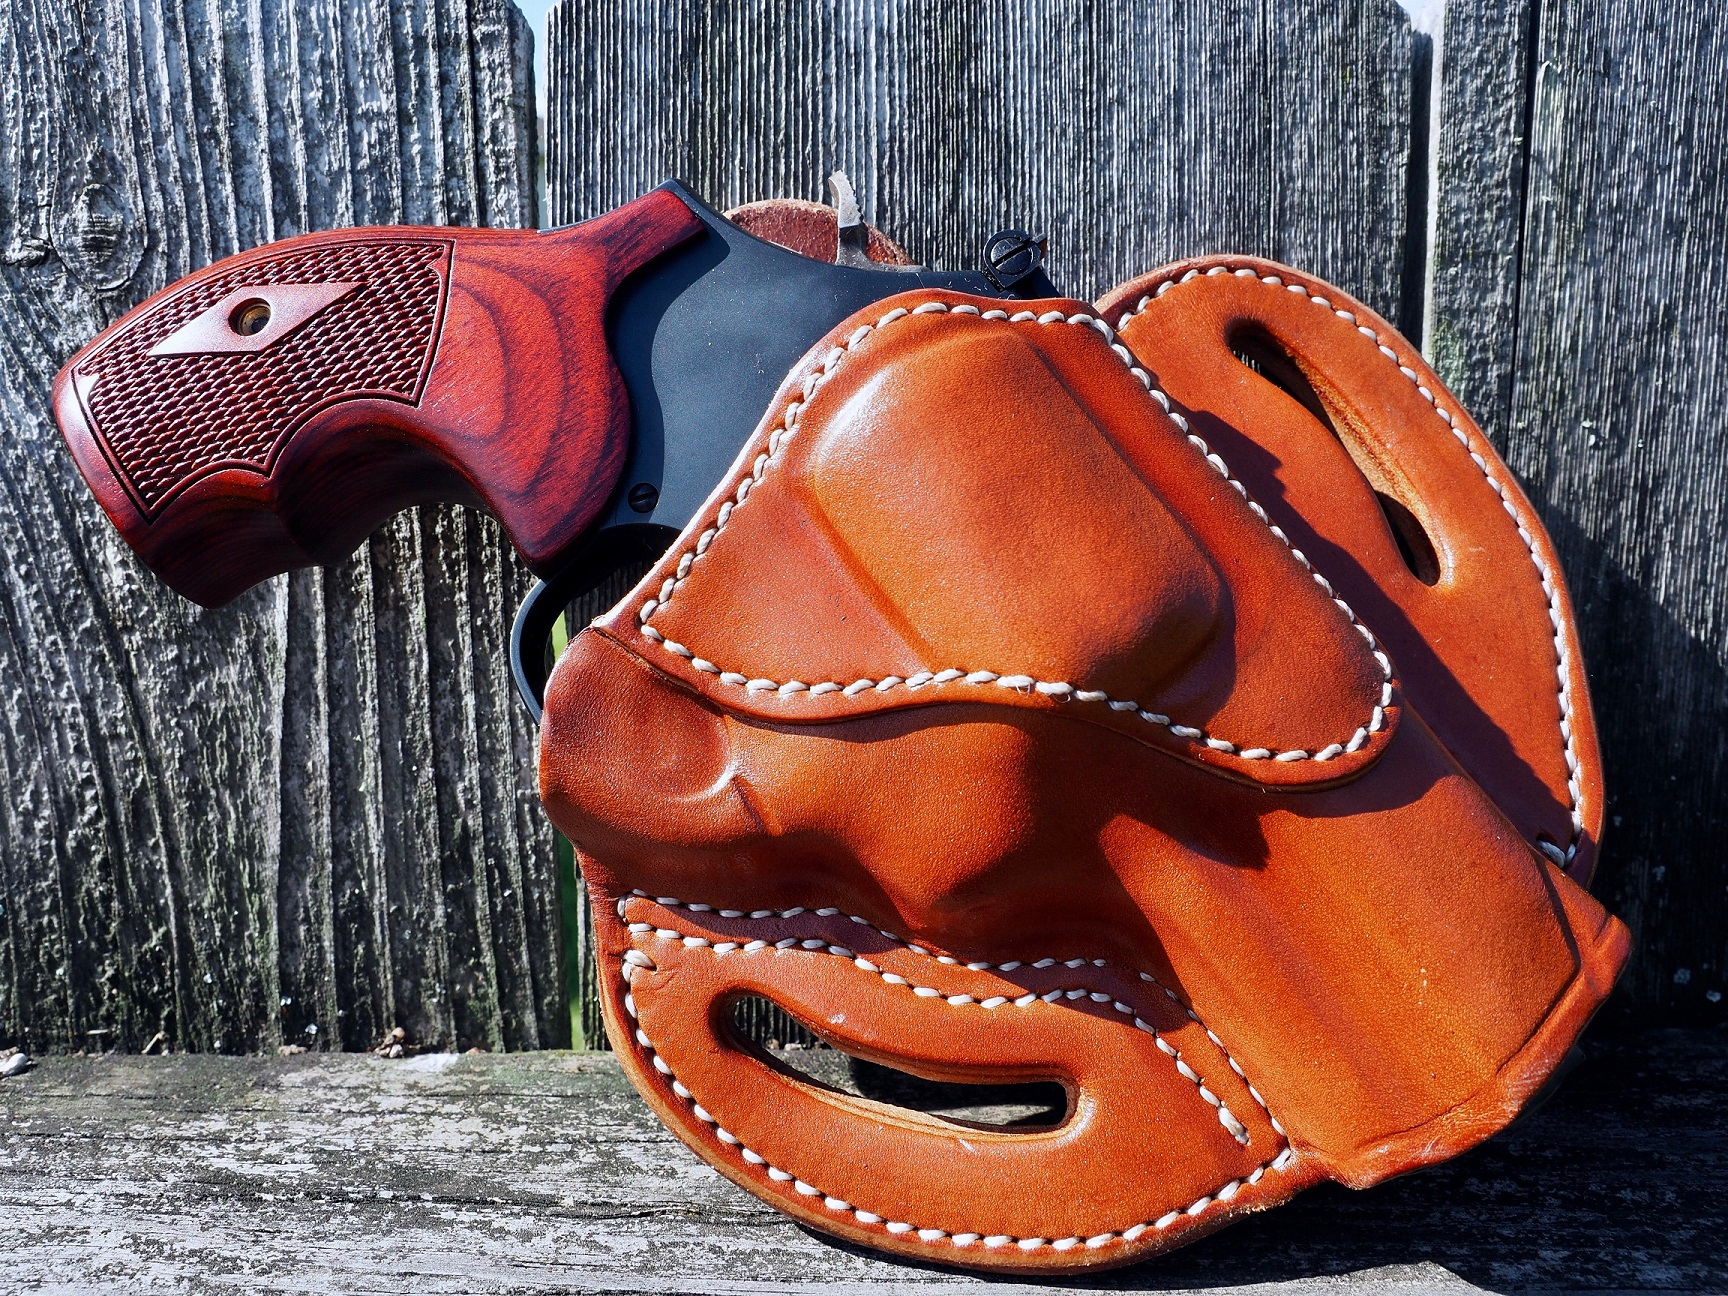 1791 Gunleather – Handcrafted American Holsters